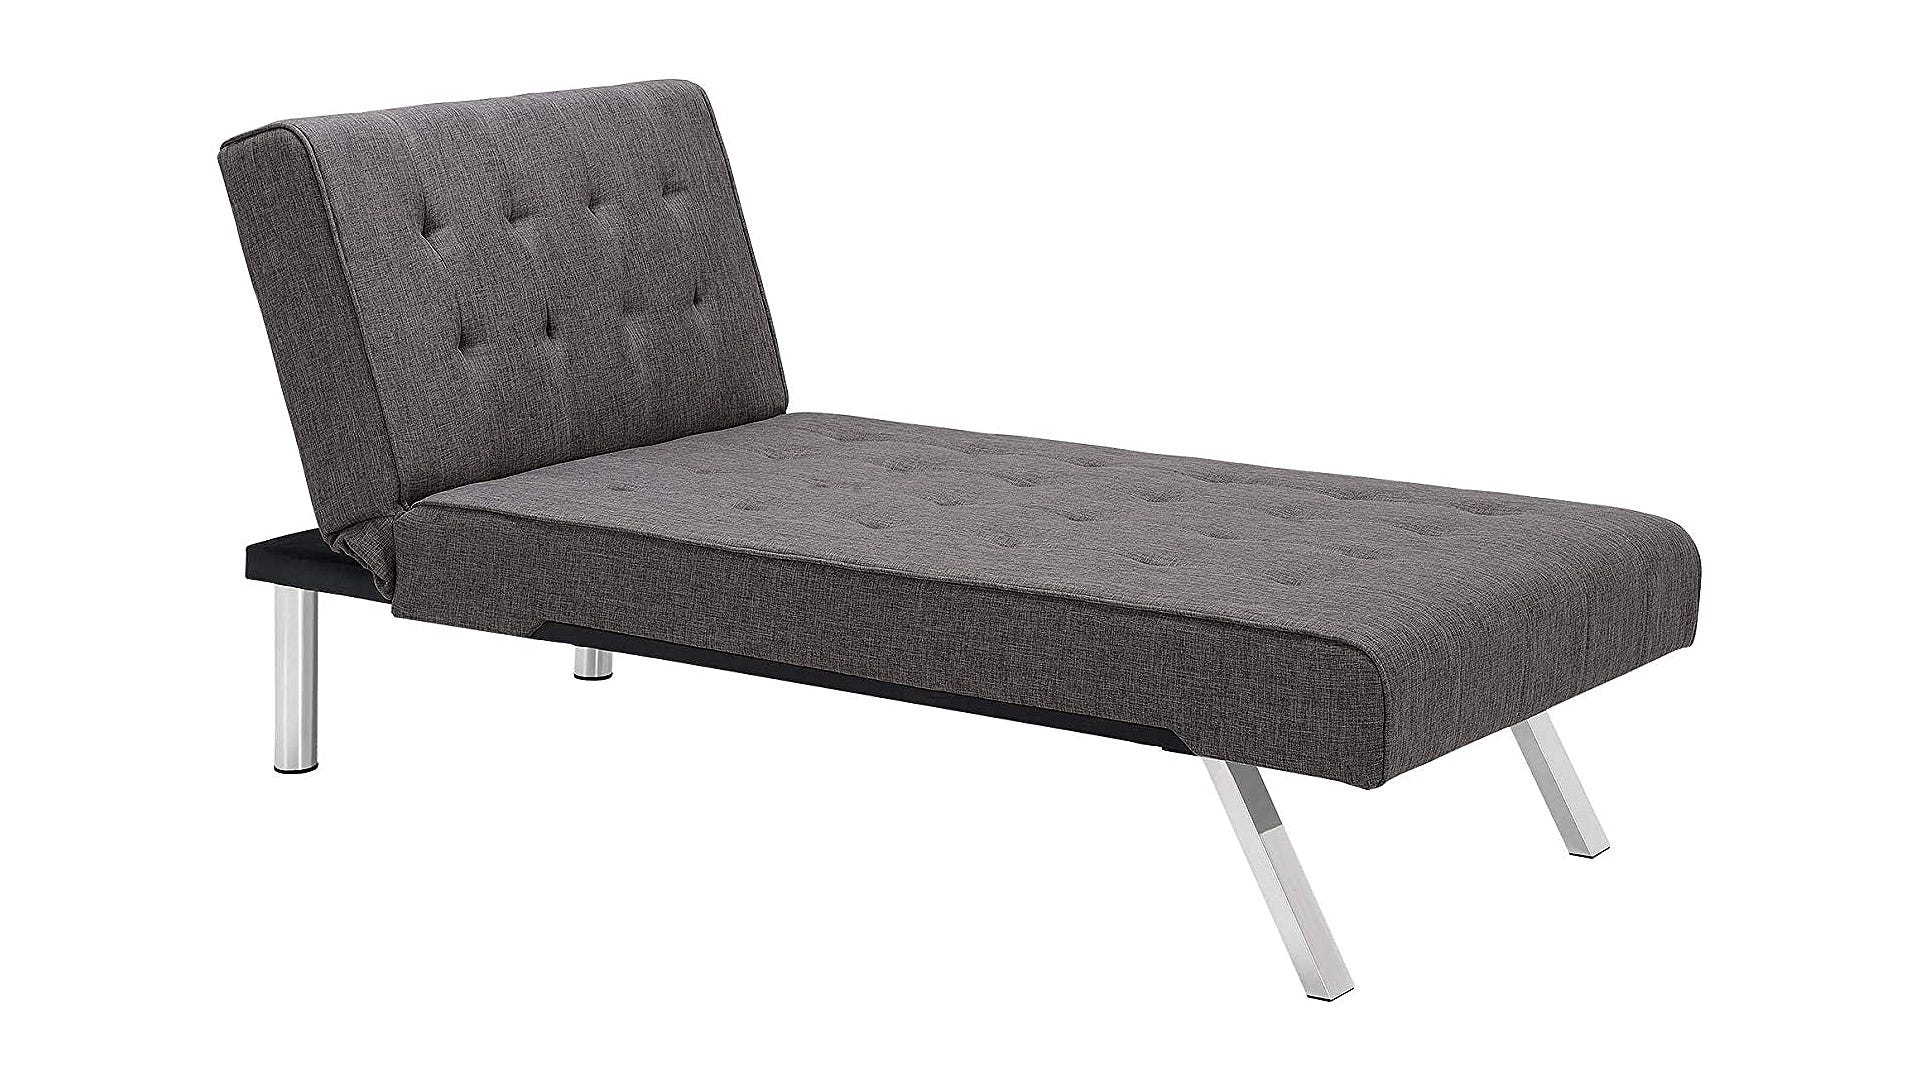 A cushioned gray chaise lounge chair with chrome legs.